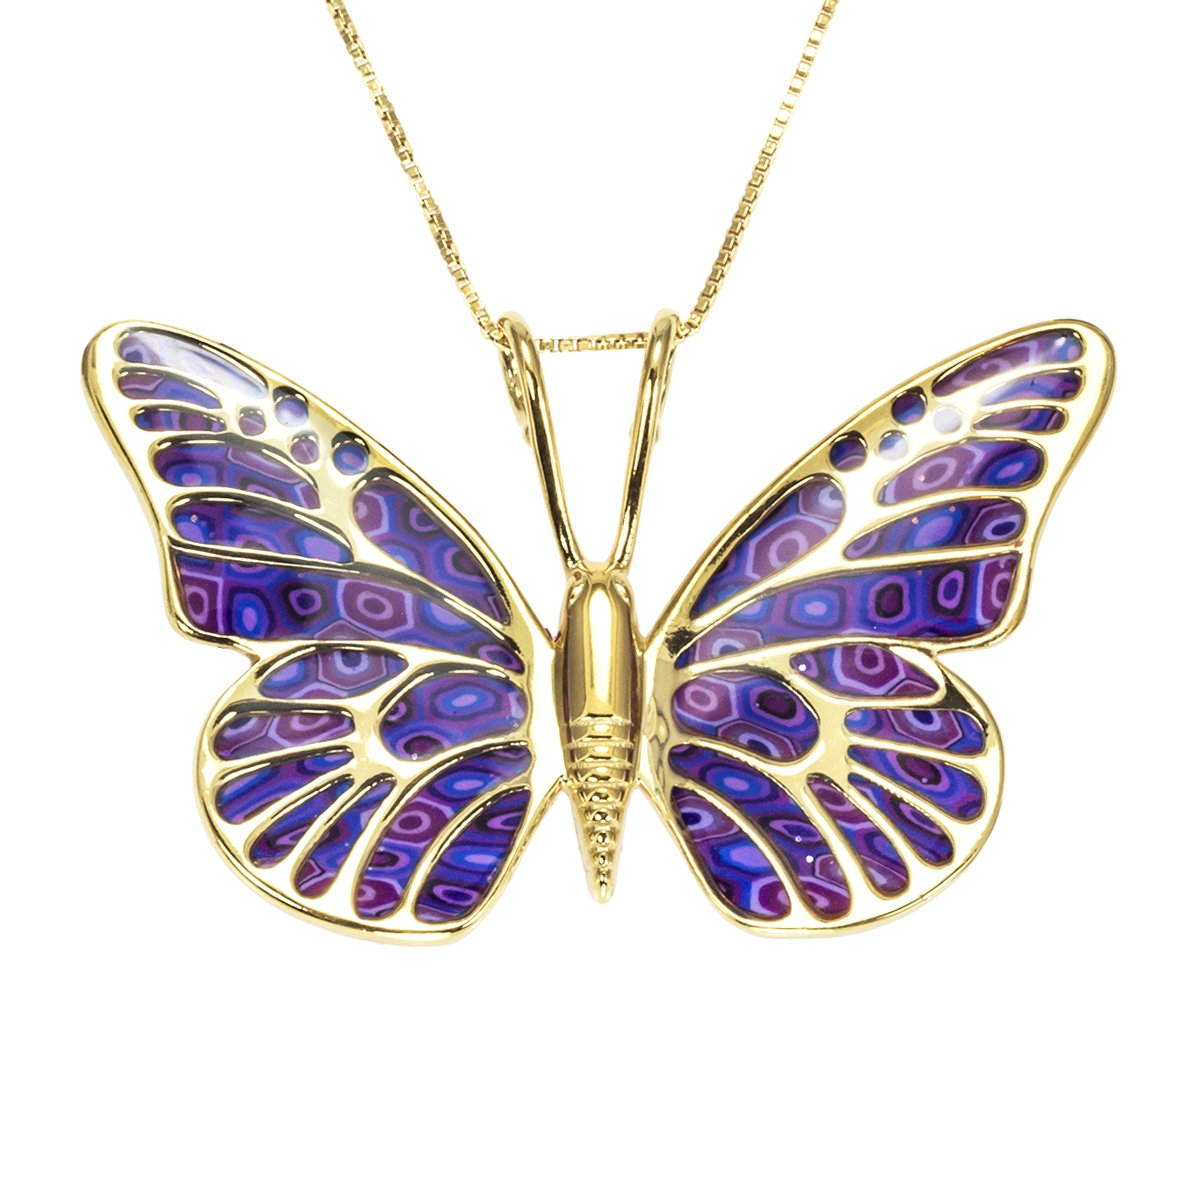 Gold Plated Sterling Silver Butterfly Necklace Handmade Purple Polymer Clay Jewelry, 16.5'' Gold Filled